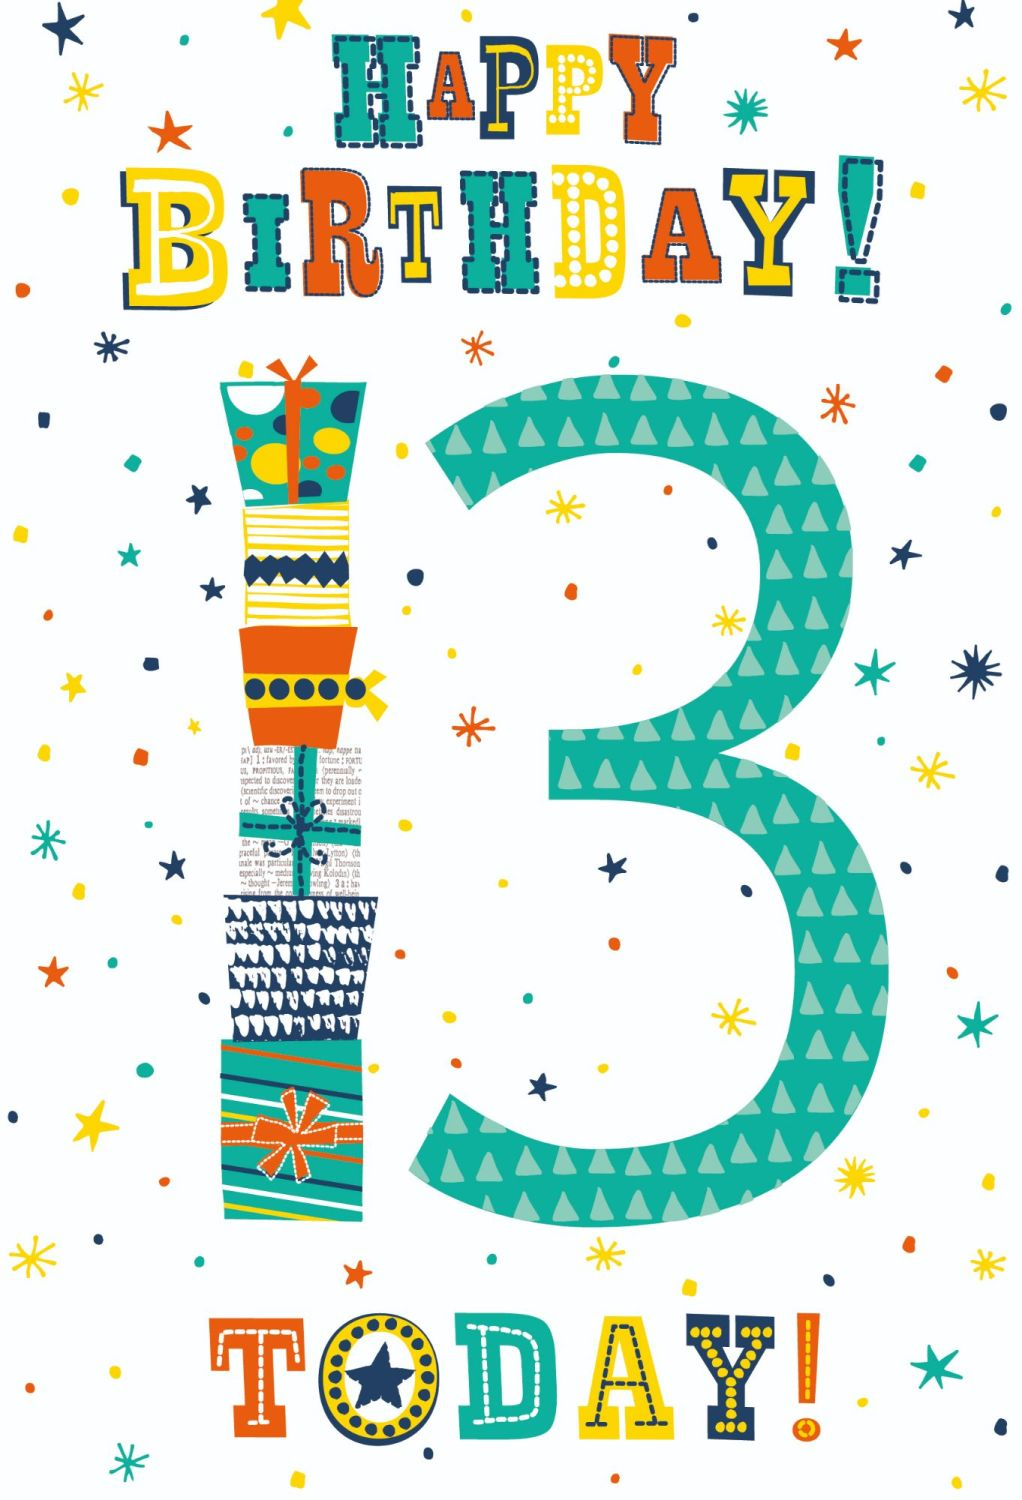 13th Birthday Cards - HAPPY Birthday 13 TODAY - Birthday CARD For TEENAGE B